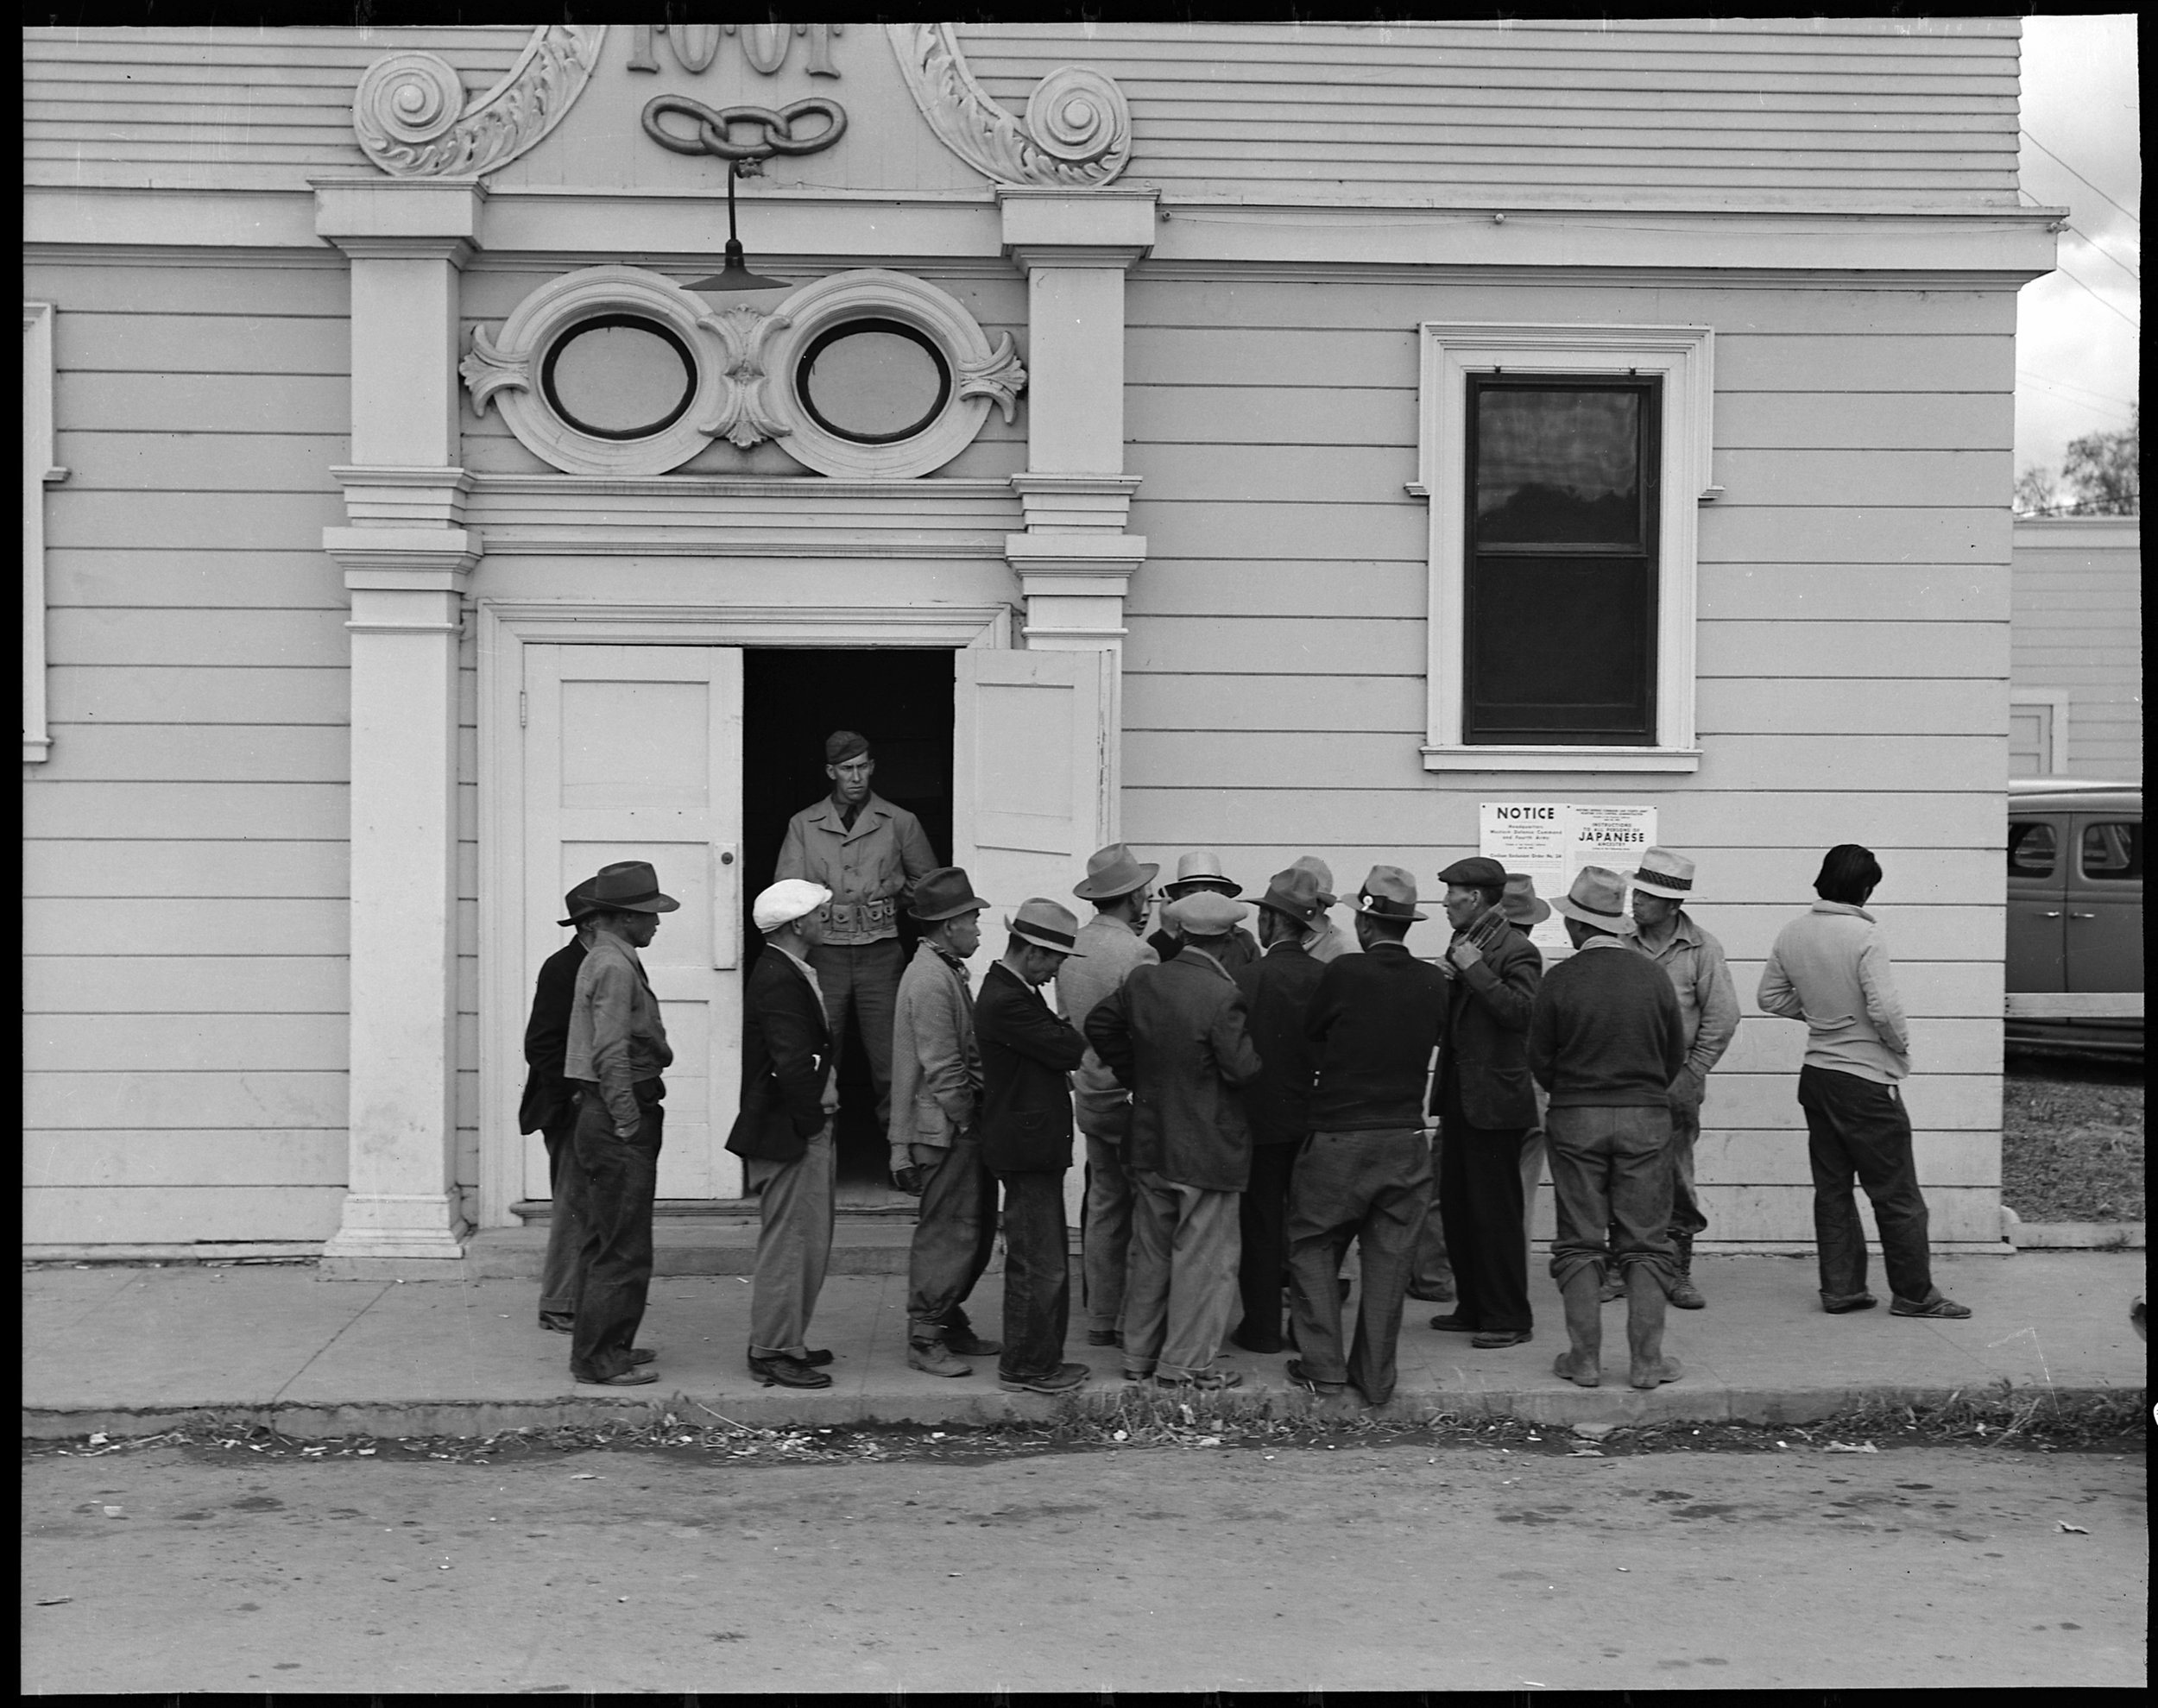 April 28, 1942 — Byron, California. Field laborers of Japanese ancestry from a large delta ranch have assembled at Wartime Civil Control Administration station to receive instructions for evacuation which is to be effective in three days under Civilian Exclusion Order Number 24. They are arguing together about whether or not they should return to the ranch to work for the remaining five days or whether they shall spend that time on their personal affairs.